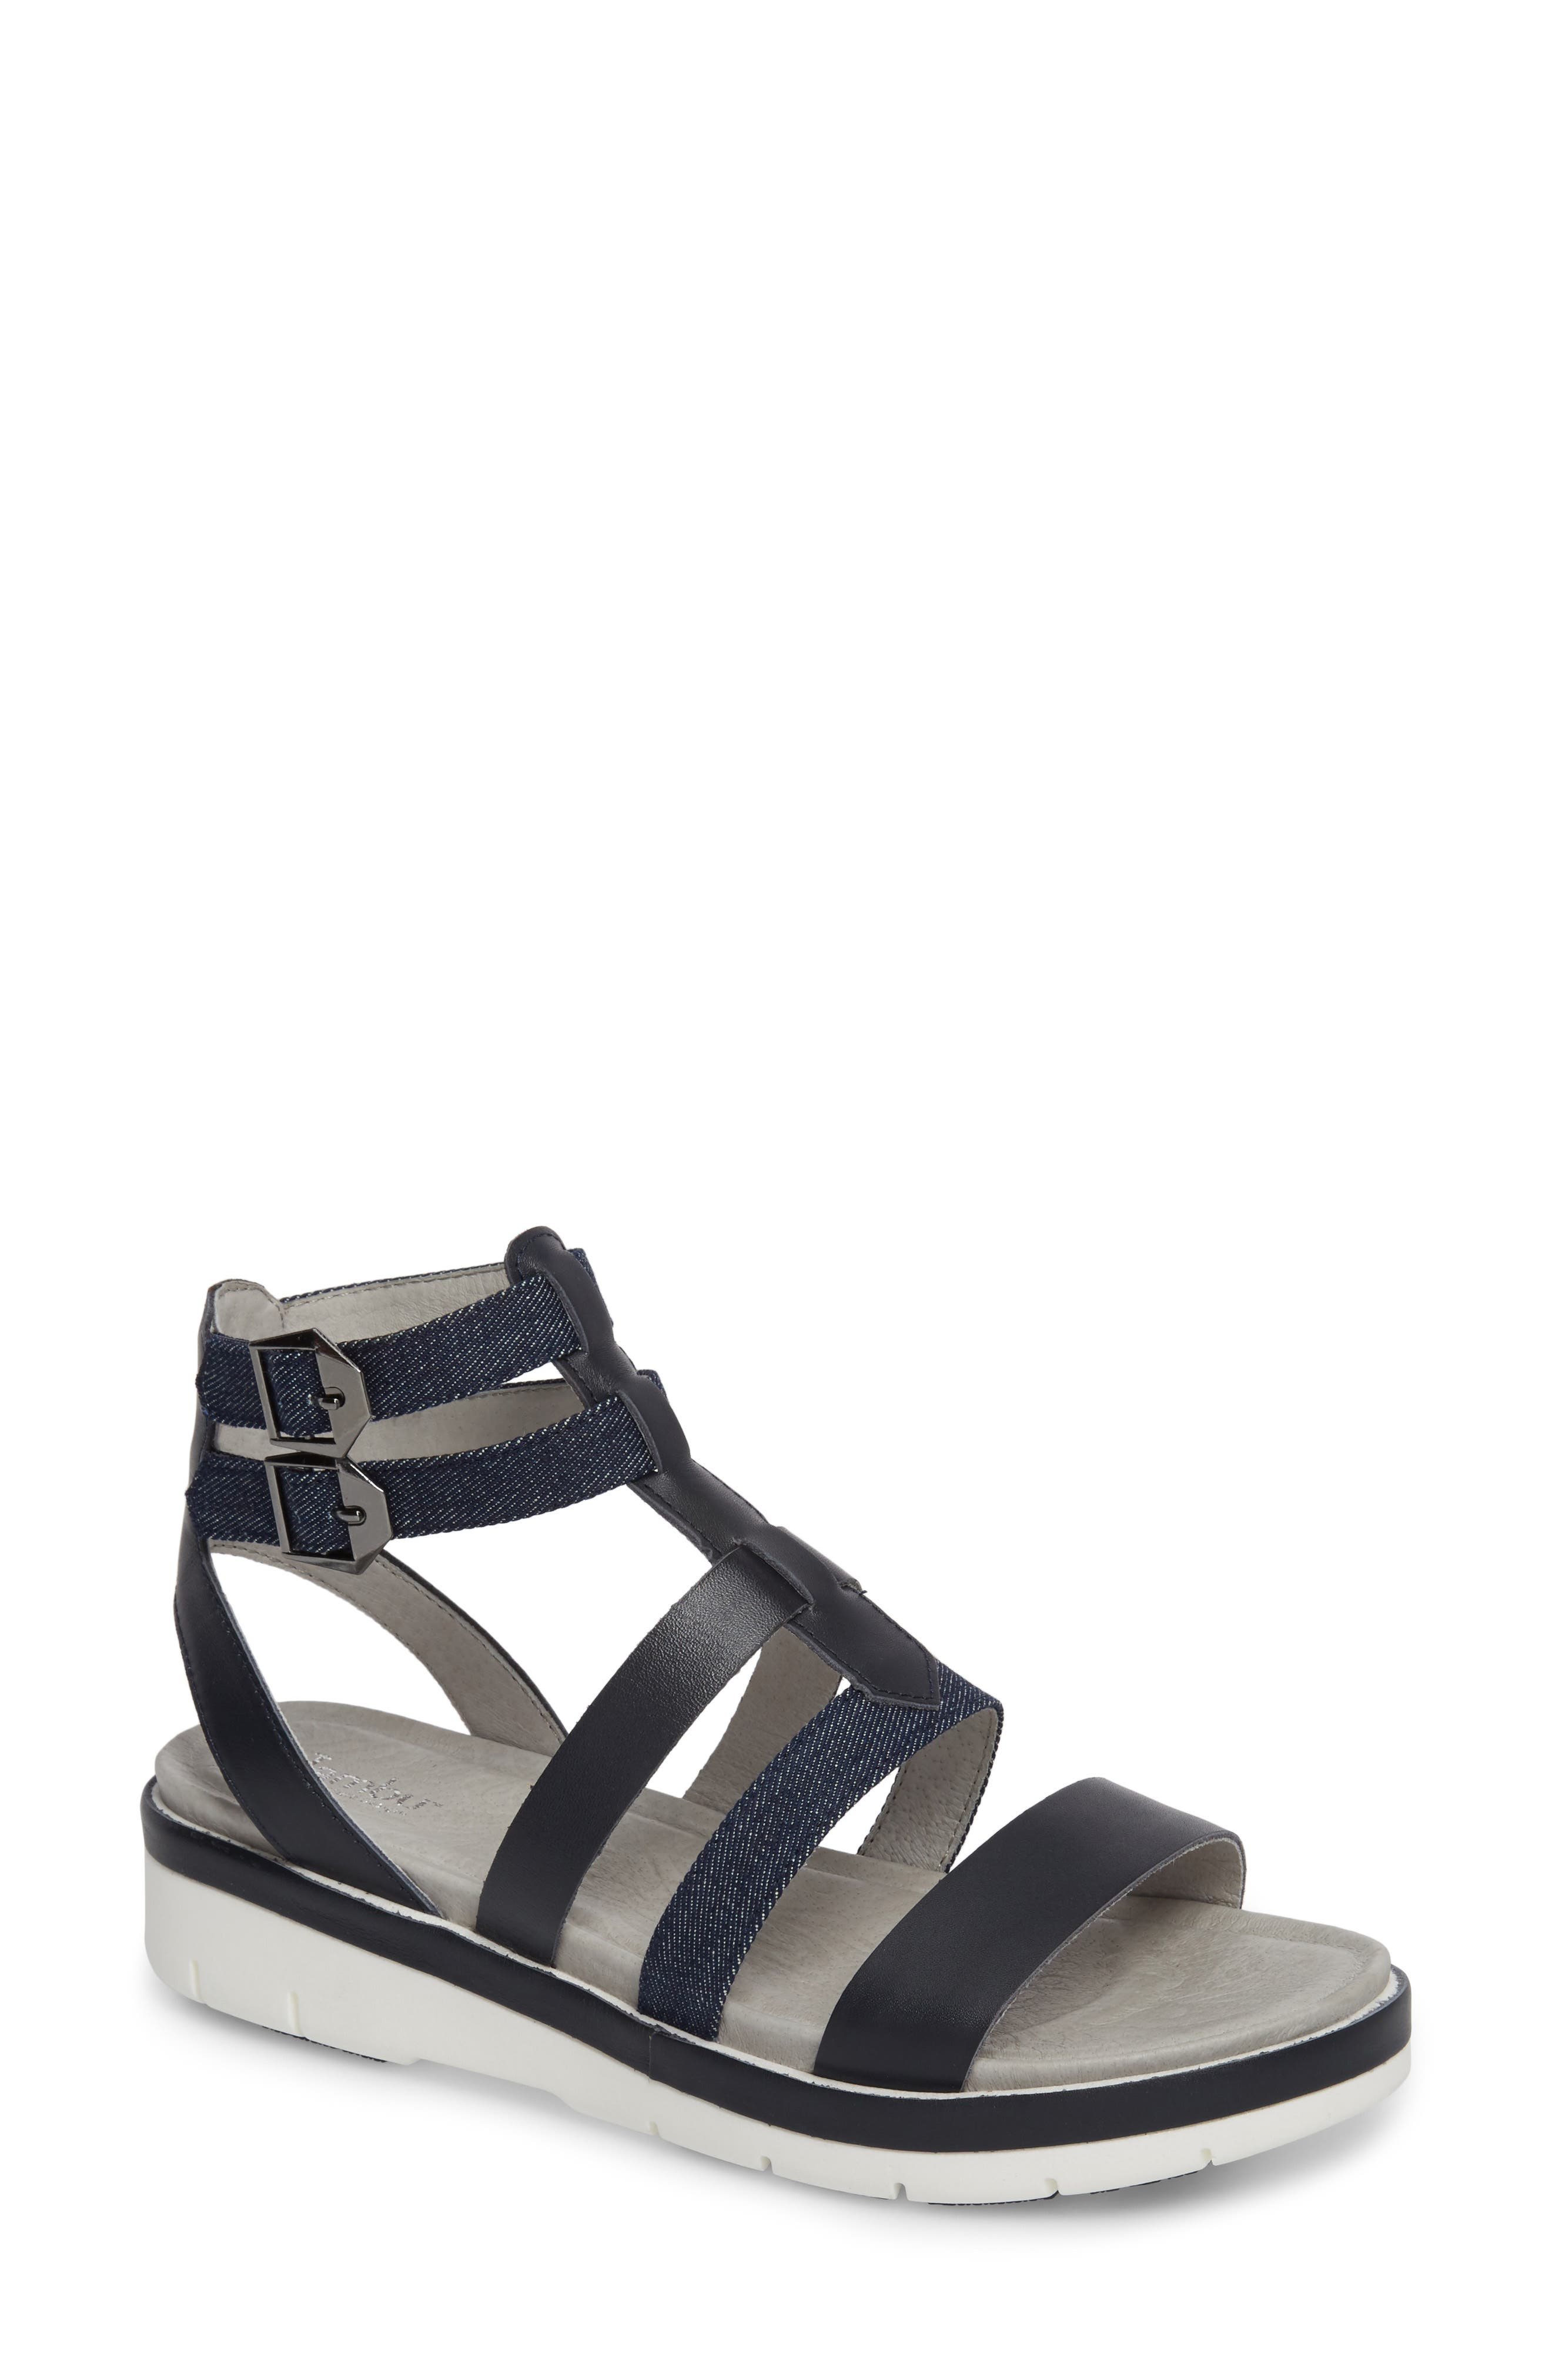 Piper Sandal,                             Main thumbnail 1, color,                             NAVY LEATHER